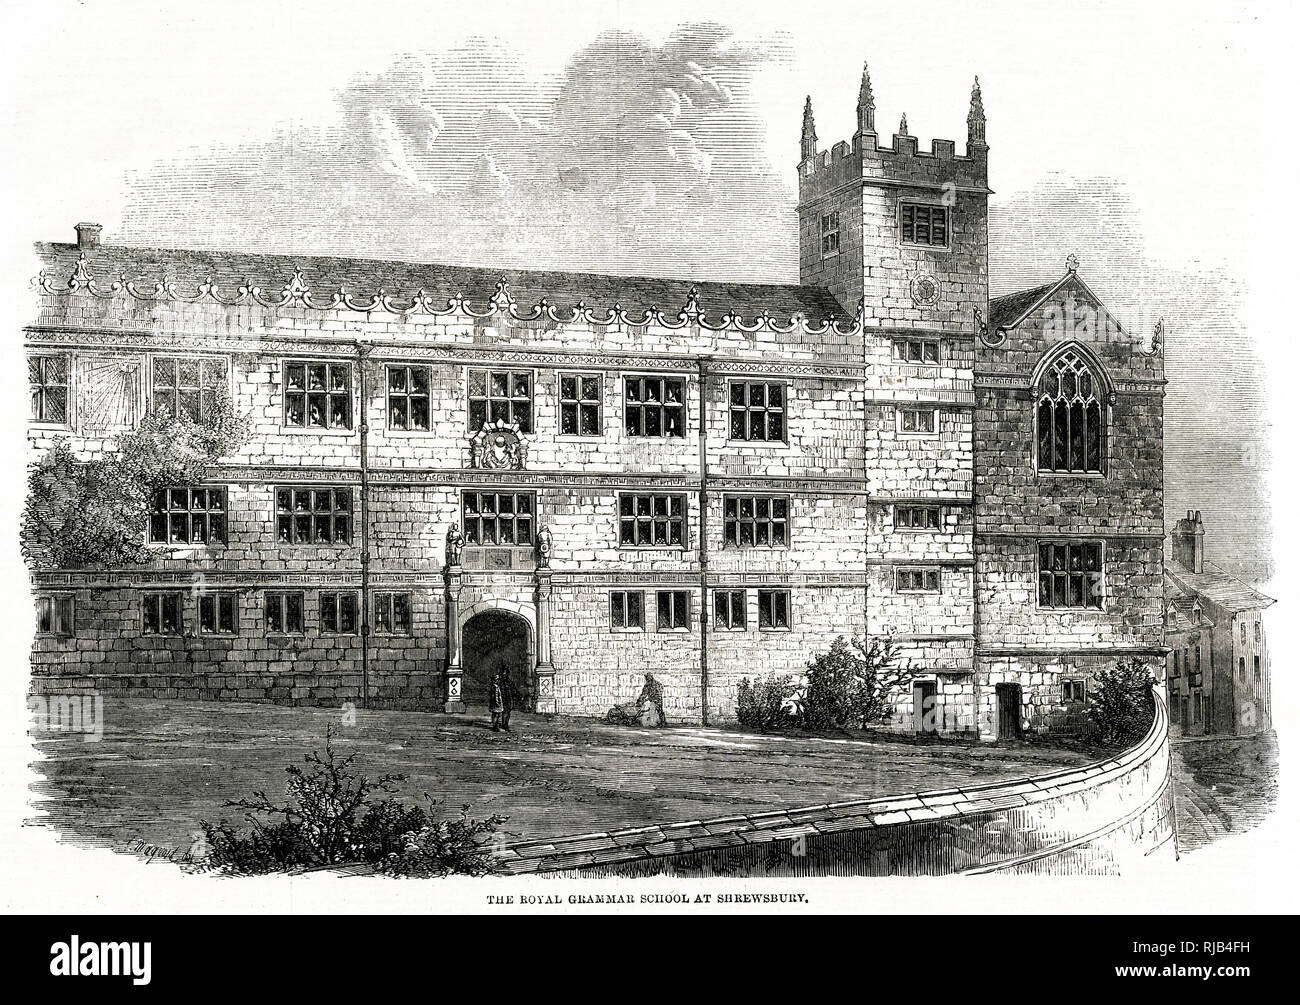 Exterior of the Royal Grammar School at Shrewsbury - Stock Image